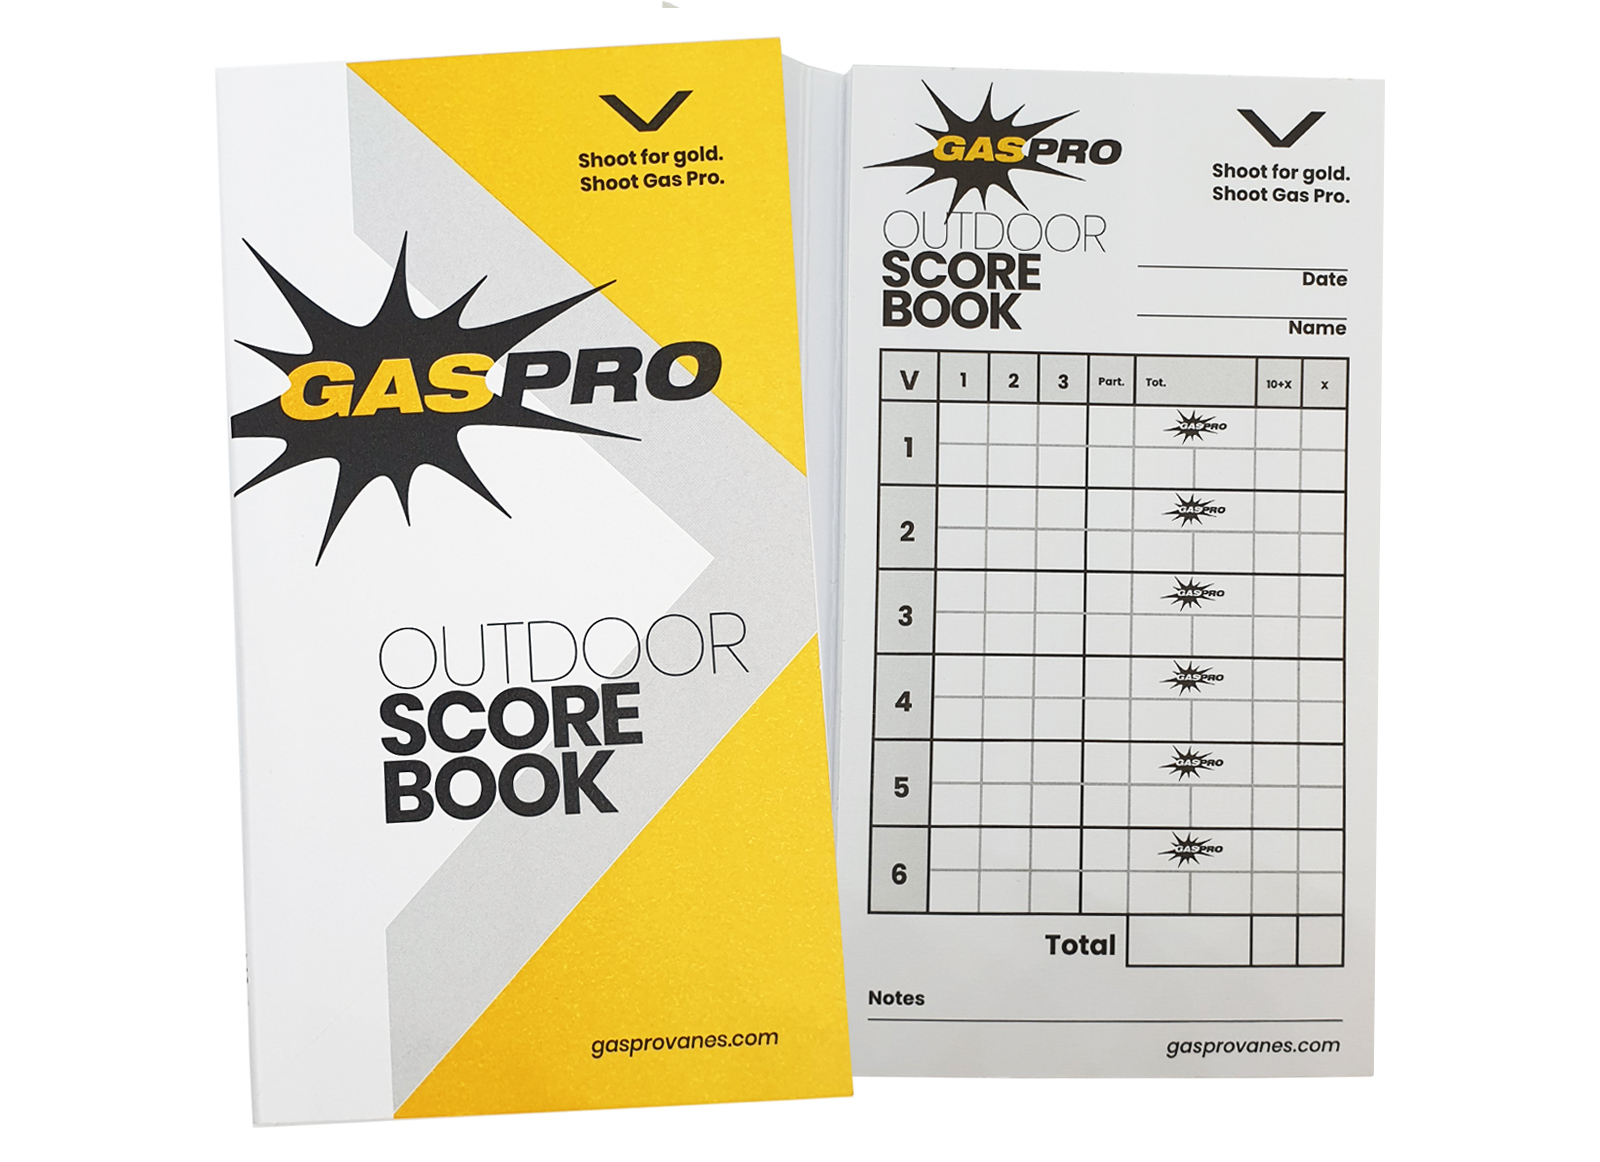 GAS PRO OUTDOOR SCORE BOOK